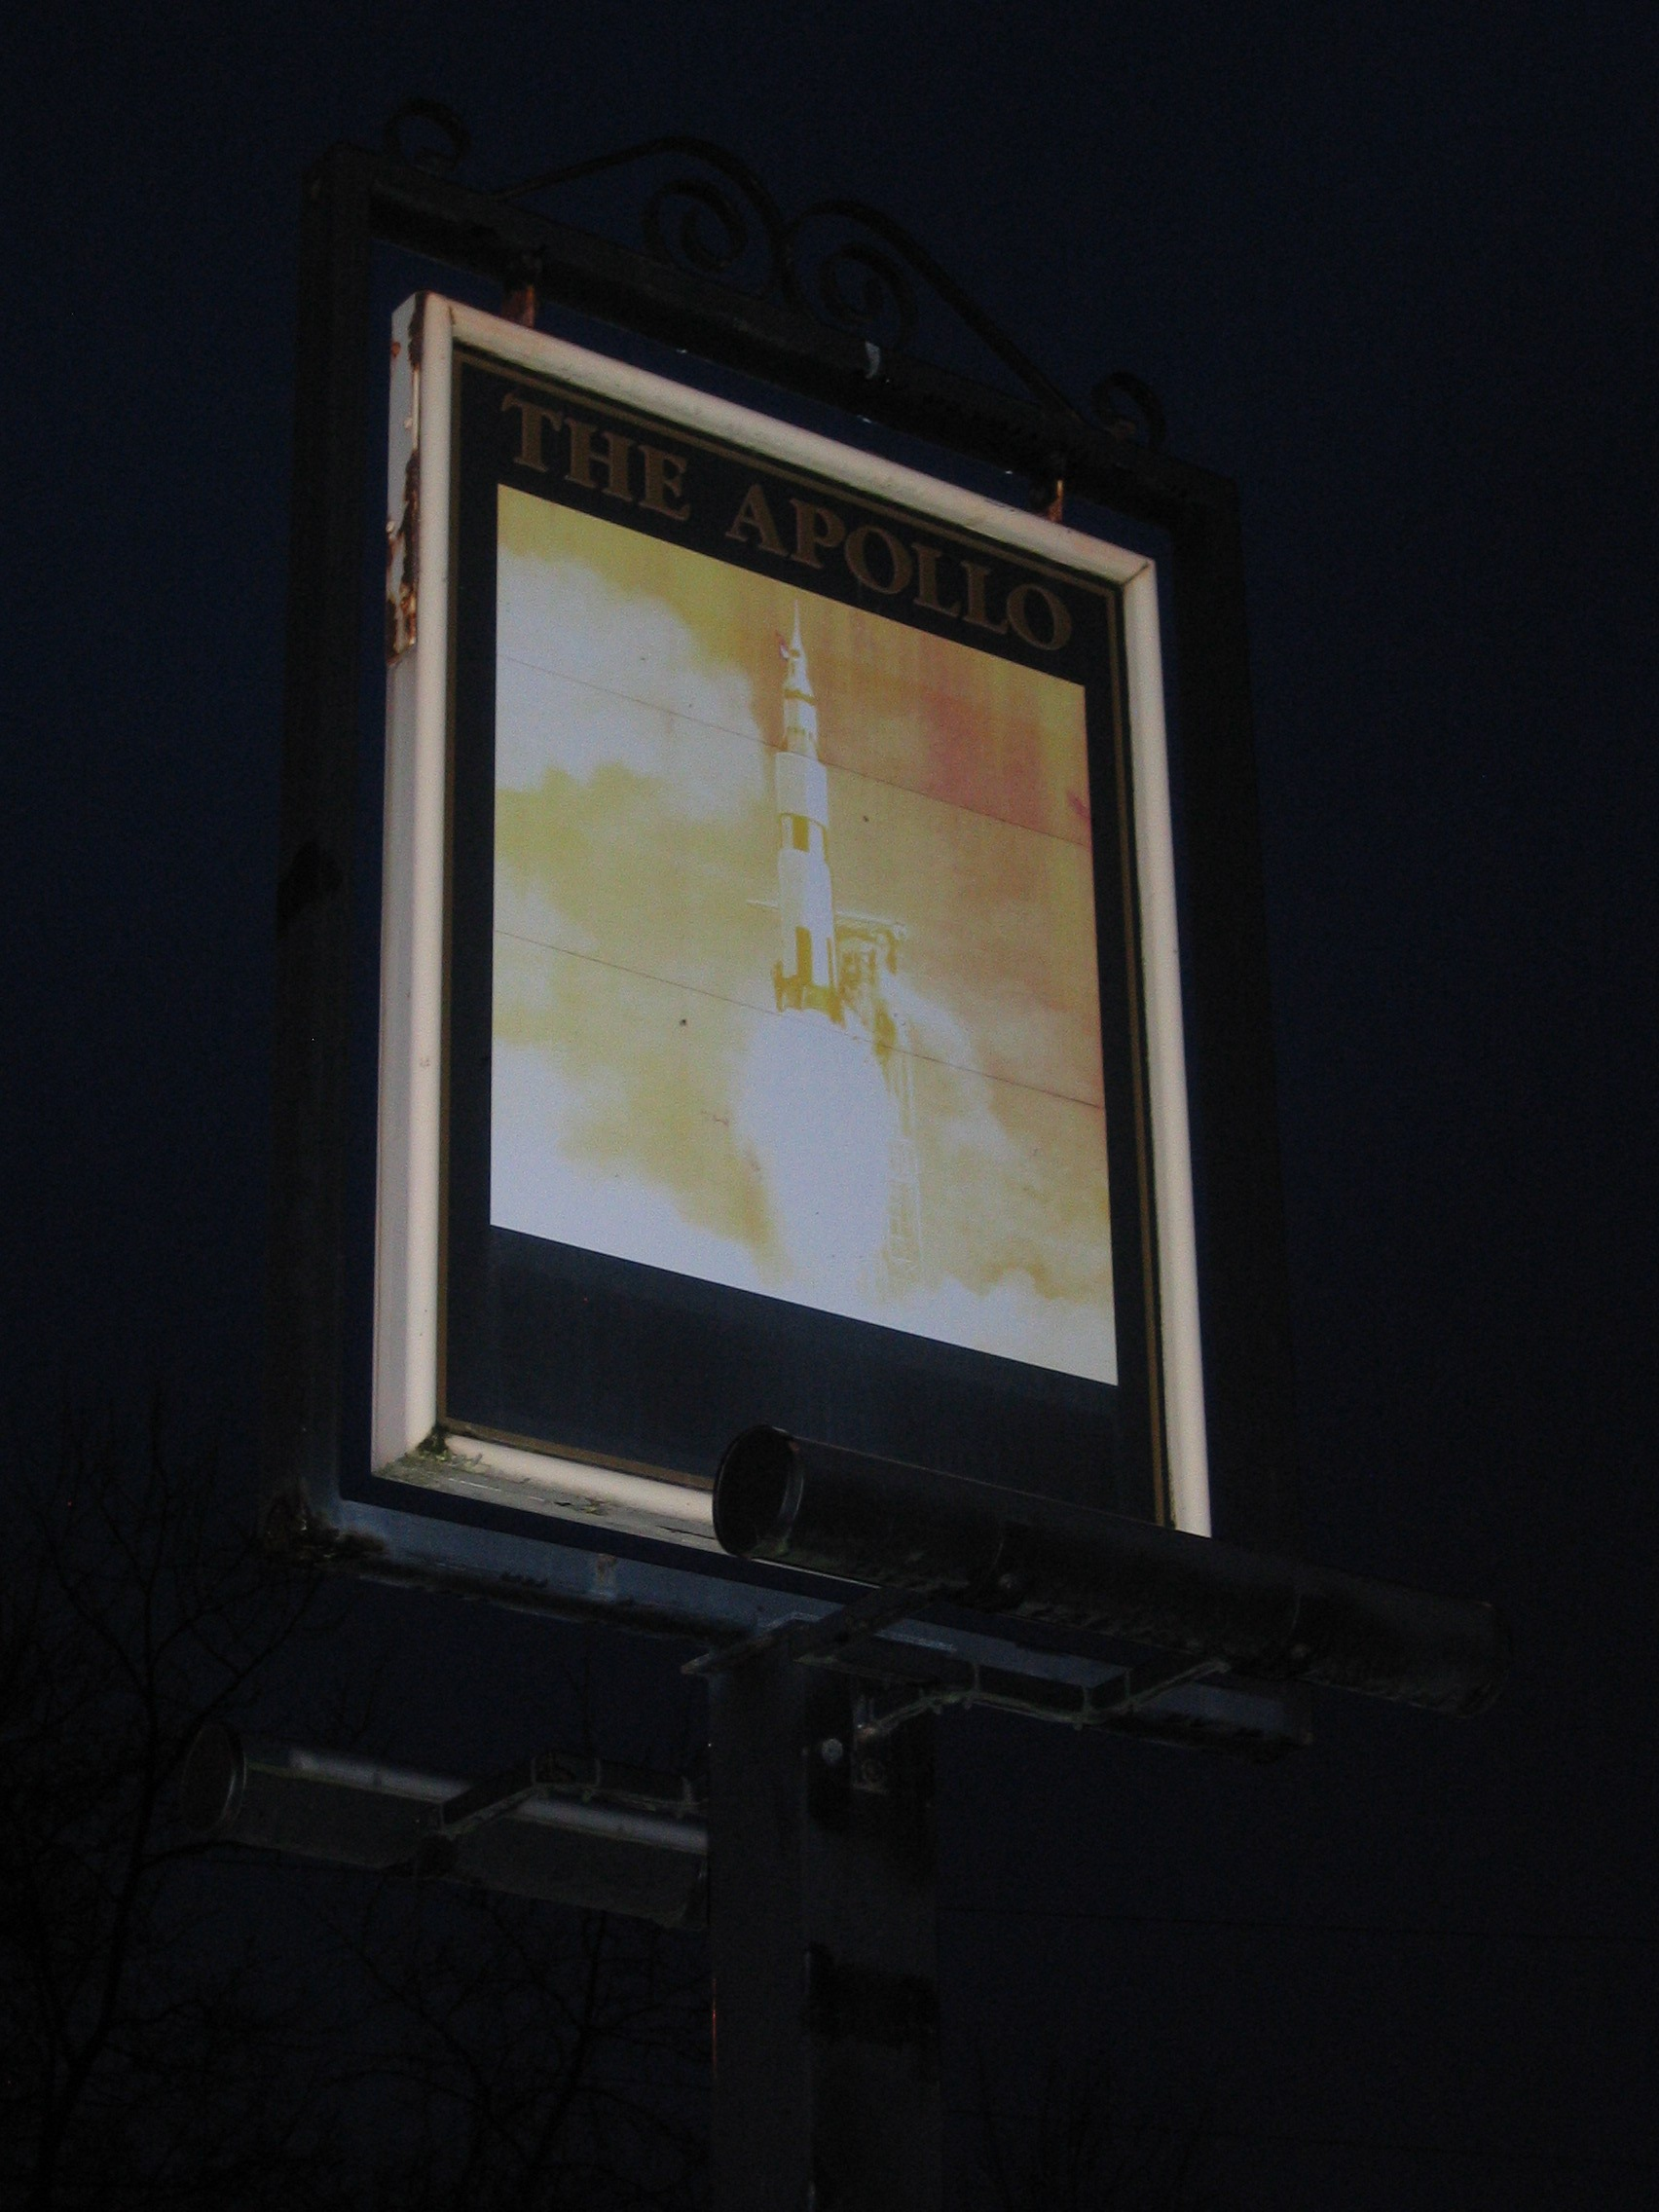 Photo taken by me – pub sign for The Apollo pub, Miles Platting, Manchester